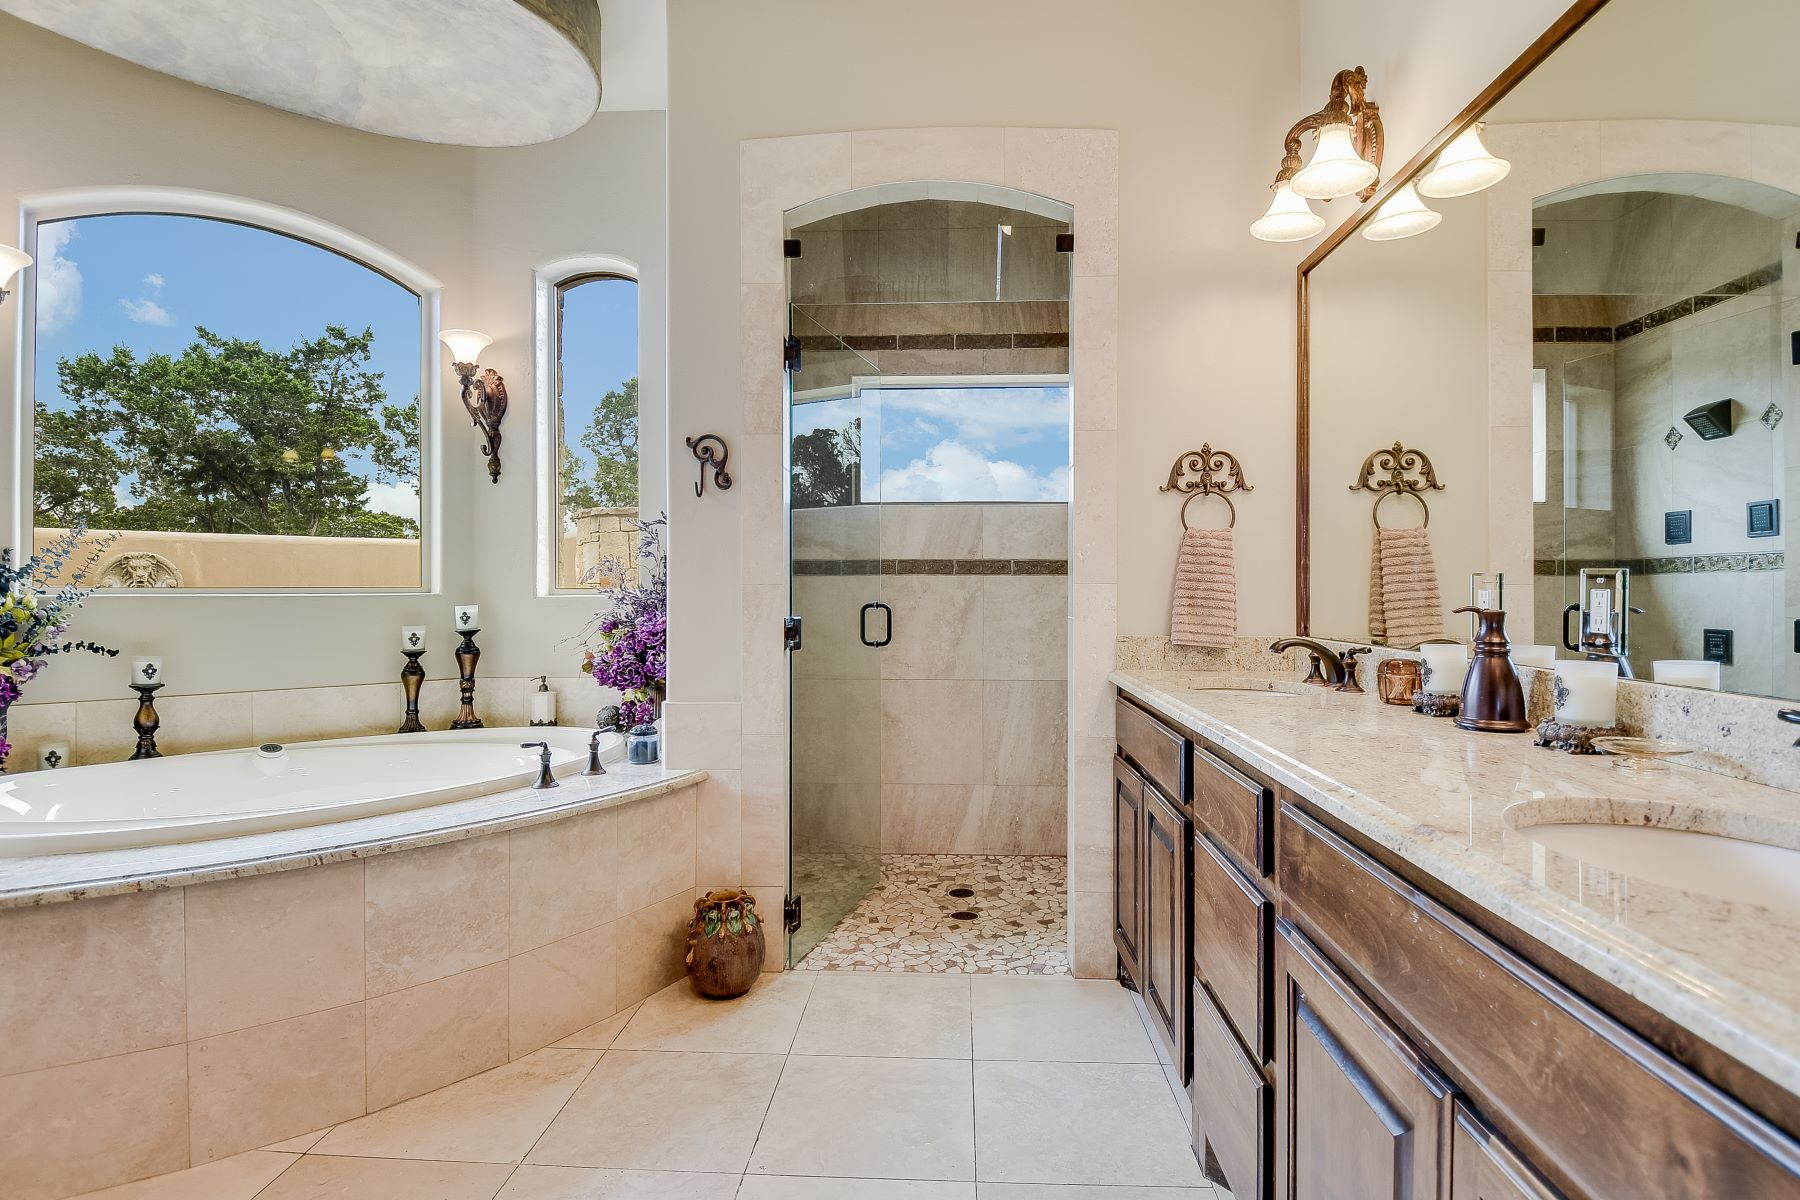 Additional photo for property listing at Stunning Mediterranean Style Home with Views 244 San Juan Kerrville, Texas 78028 United States